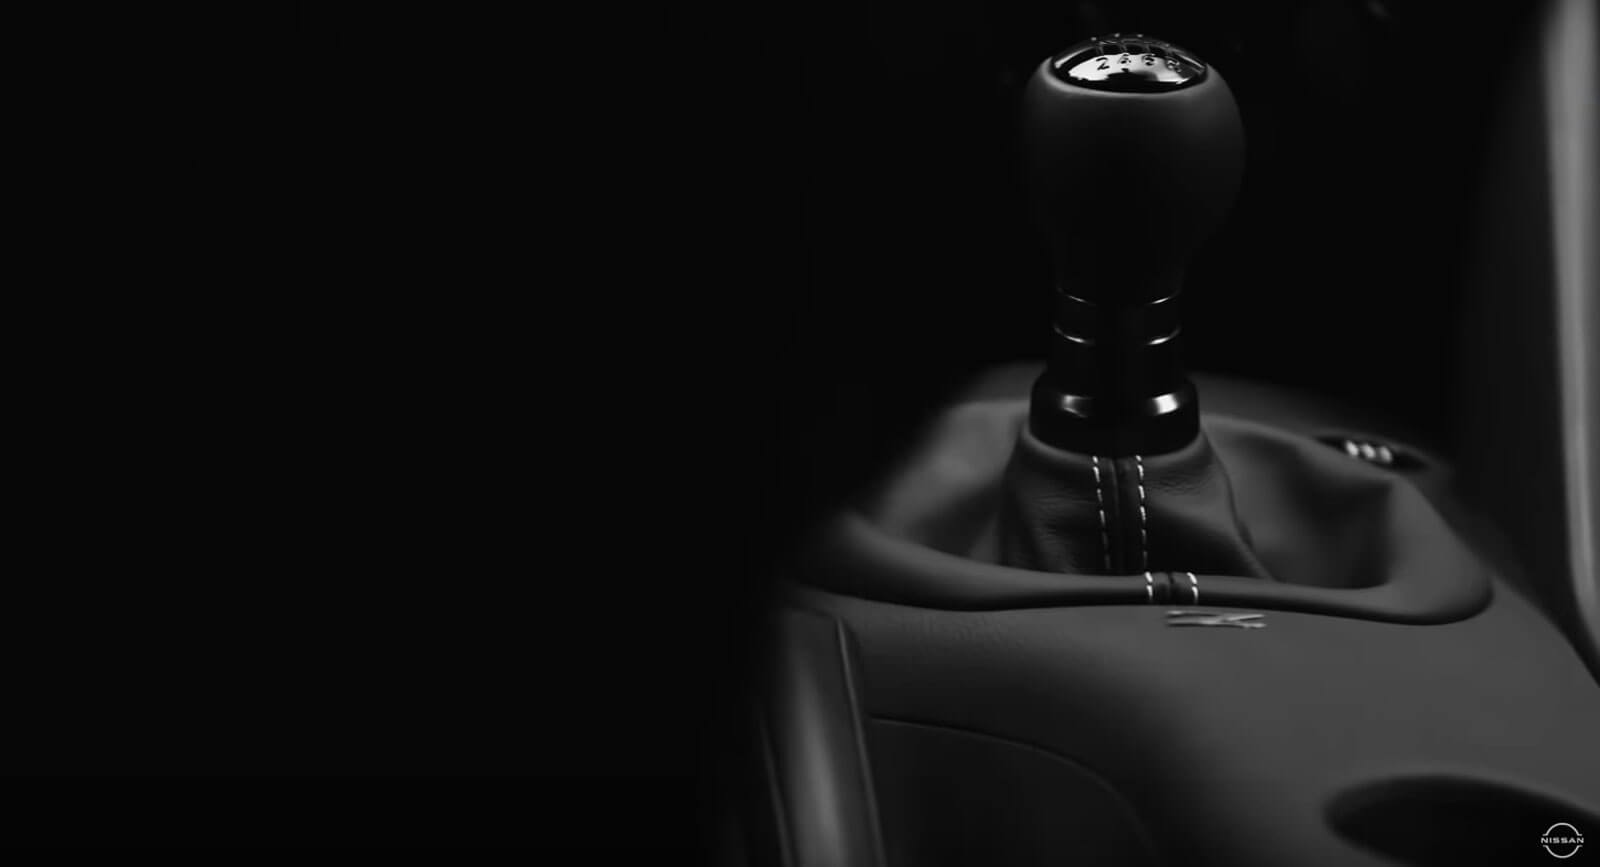 Nissan Z Proto manual transmission confirmed